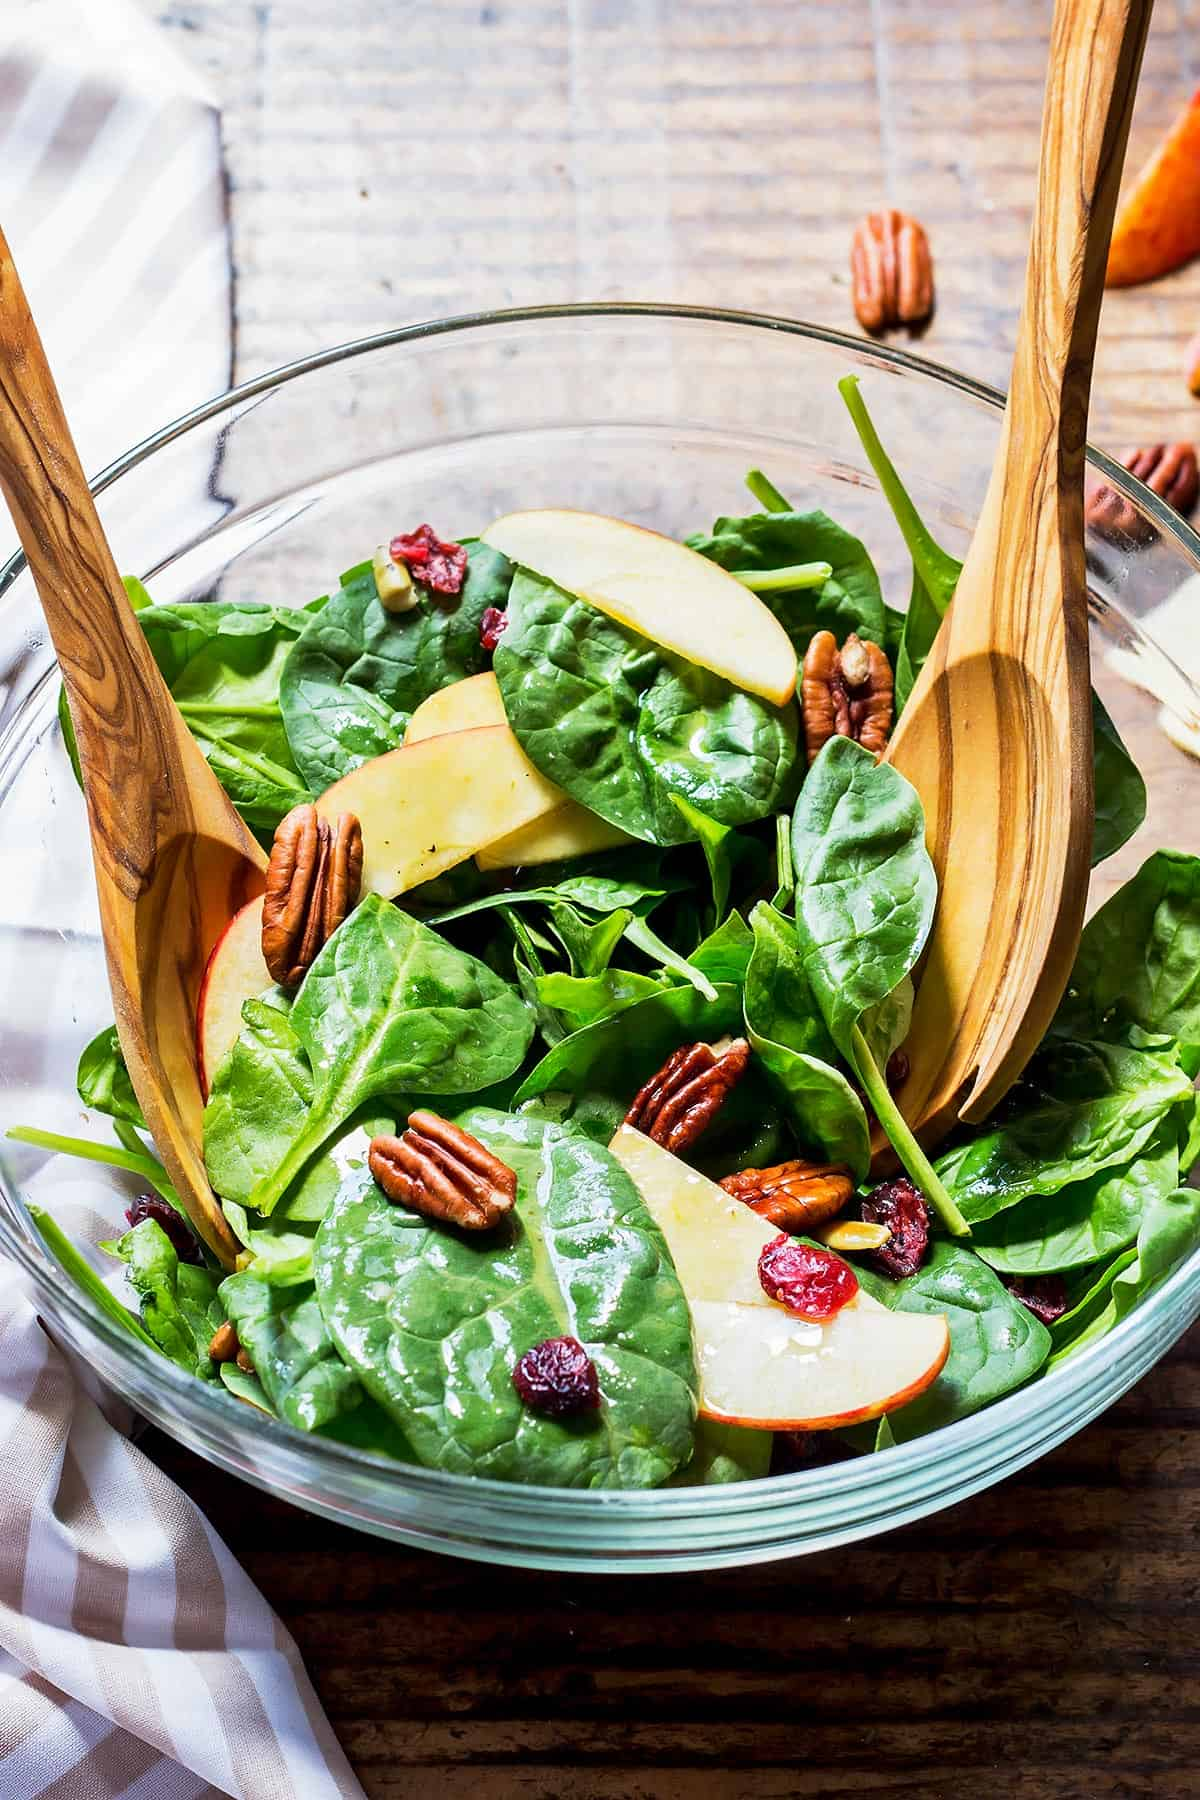 Spinach Salad with Wood Utensils